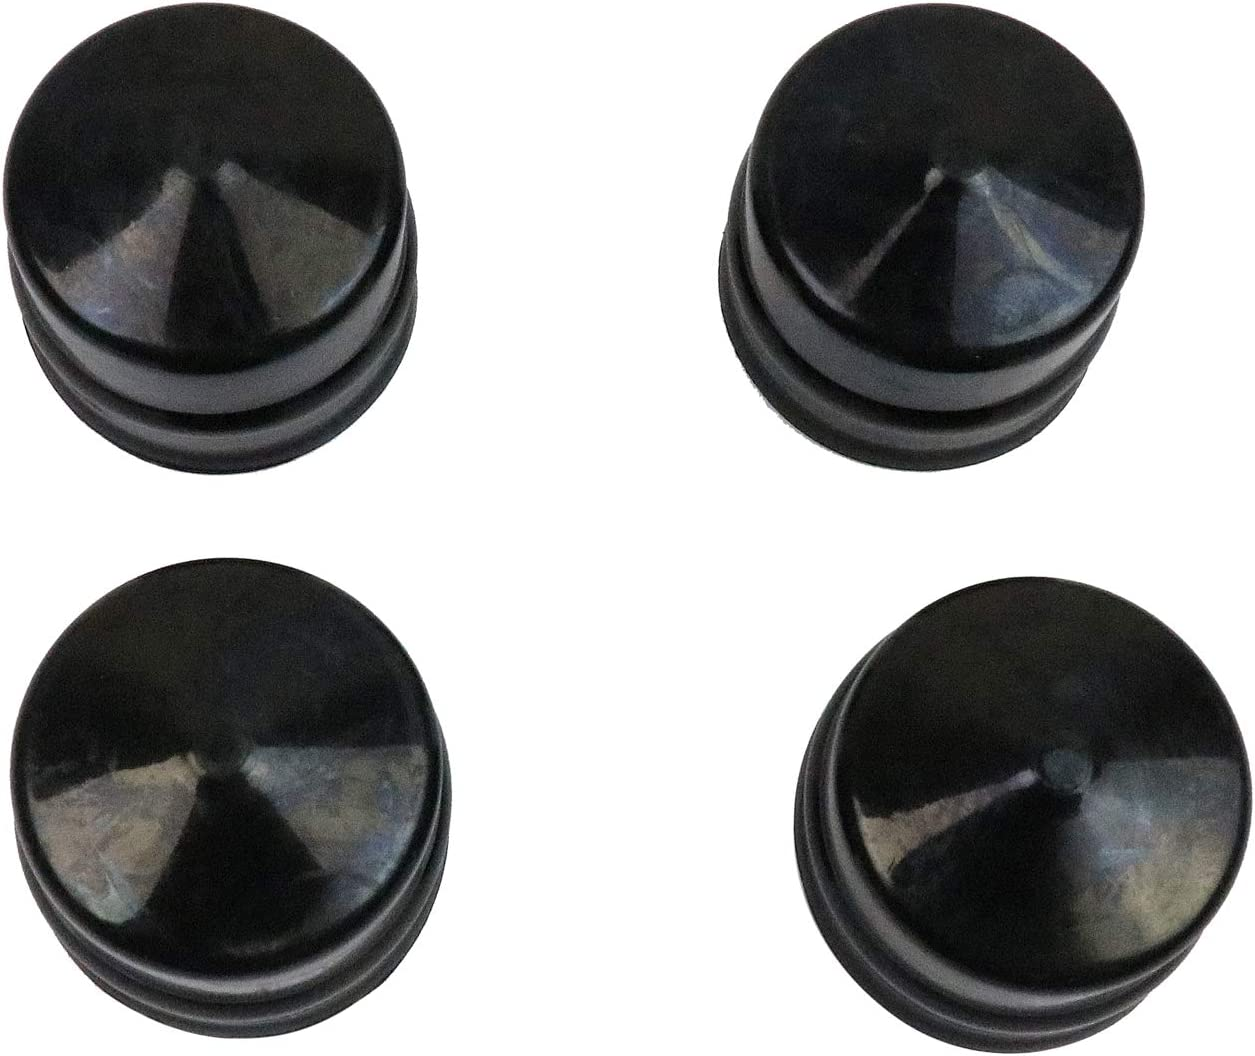 BestPartsCom New Pack of 4 Axle Cap Replacement for Husqvarna, Weed Eater, Poulan, Sears, Crafstman, Ryobi and Roper Lawn Mower, Lawn Tractor and Snow Blower Use 532104757